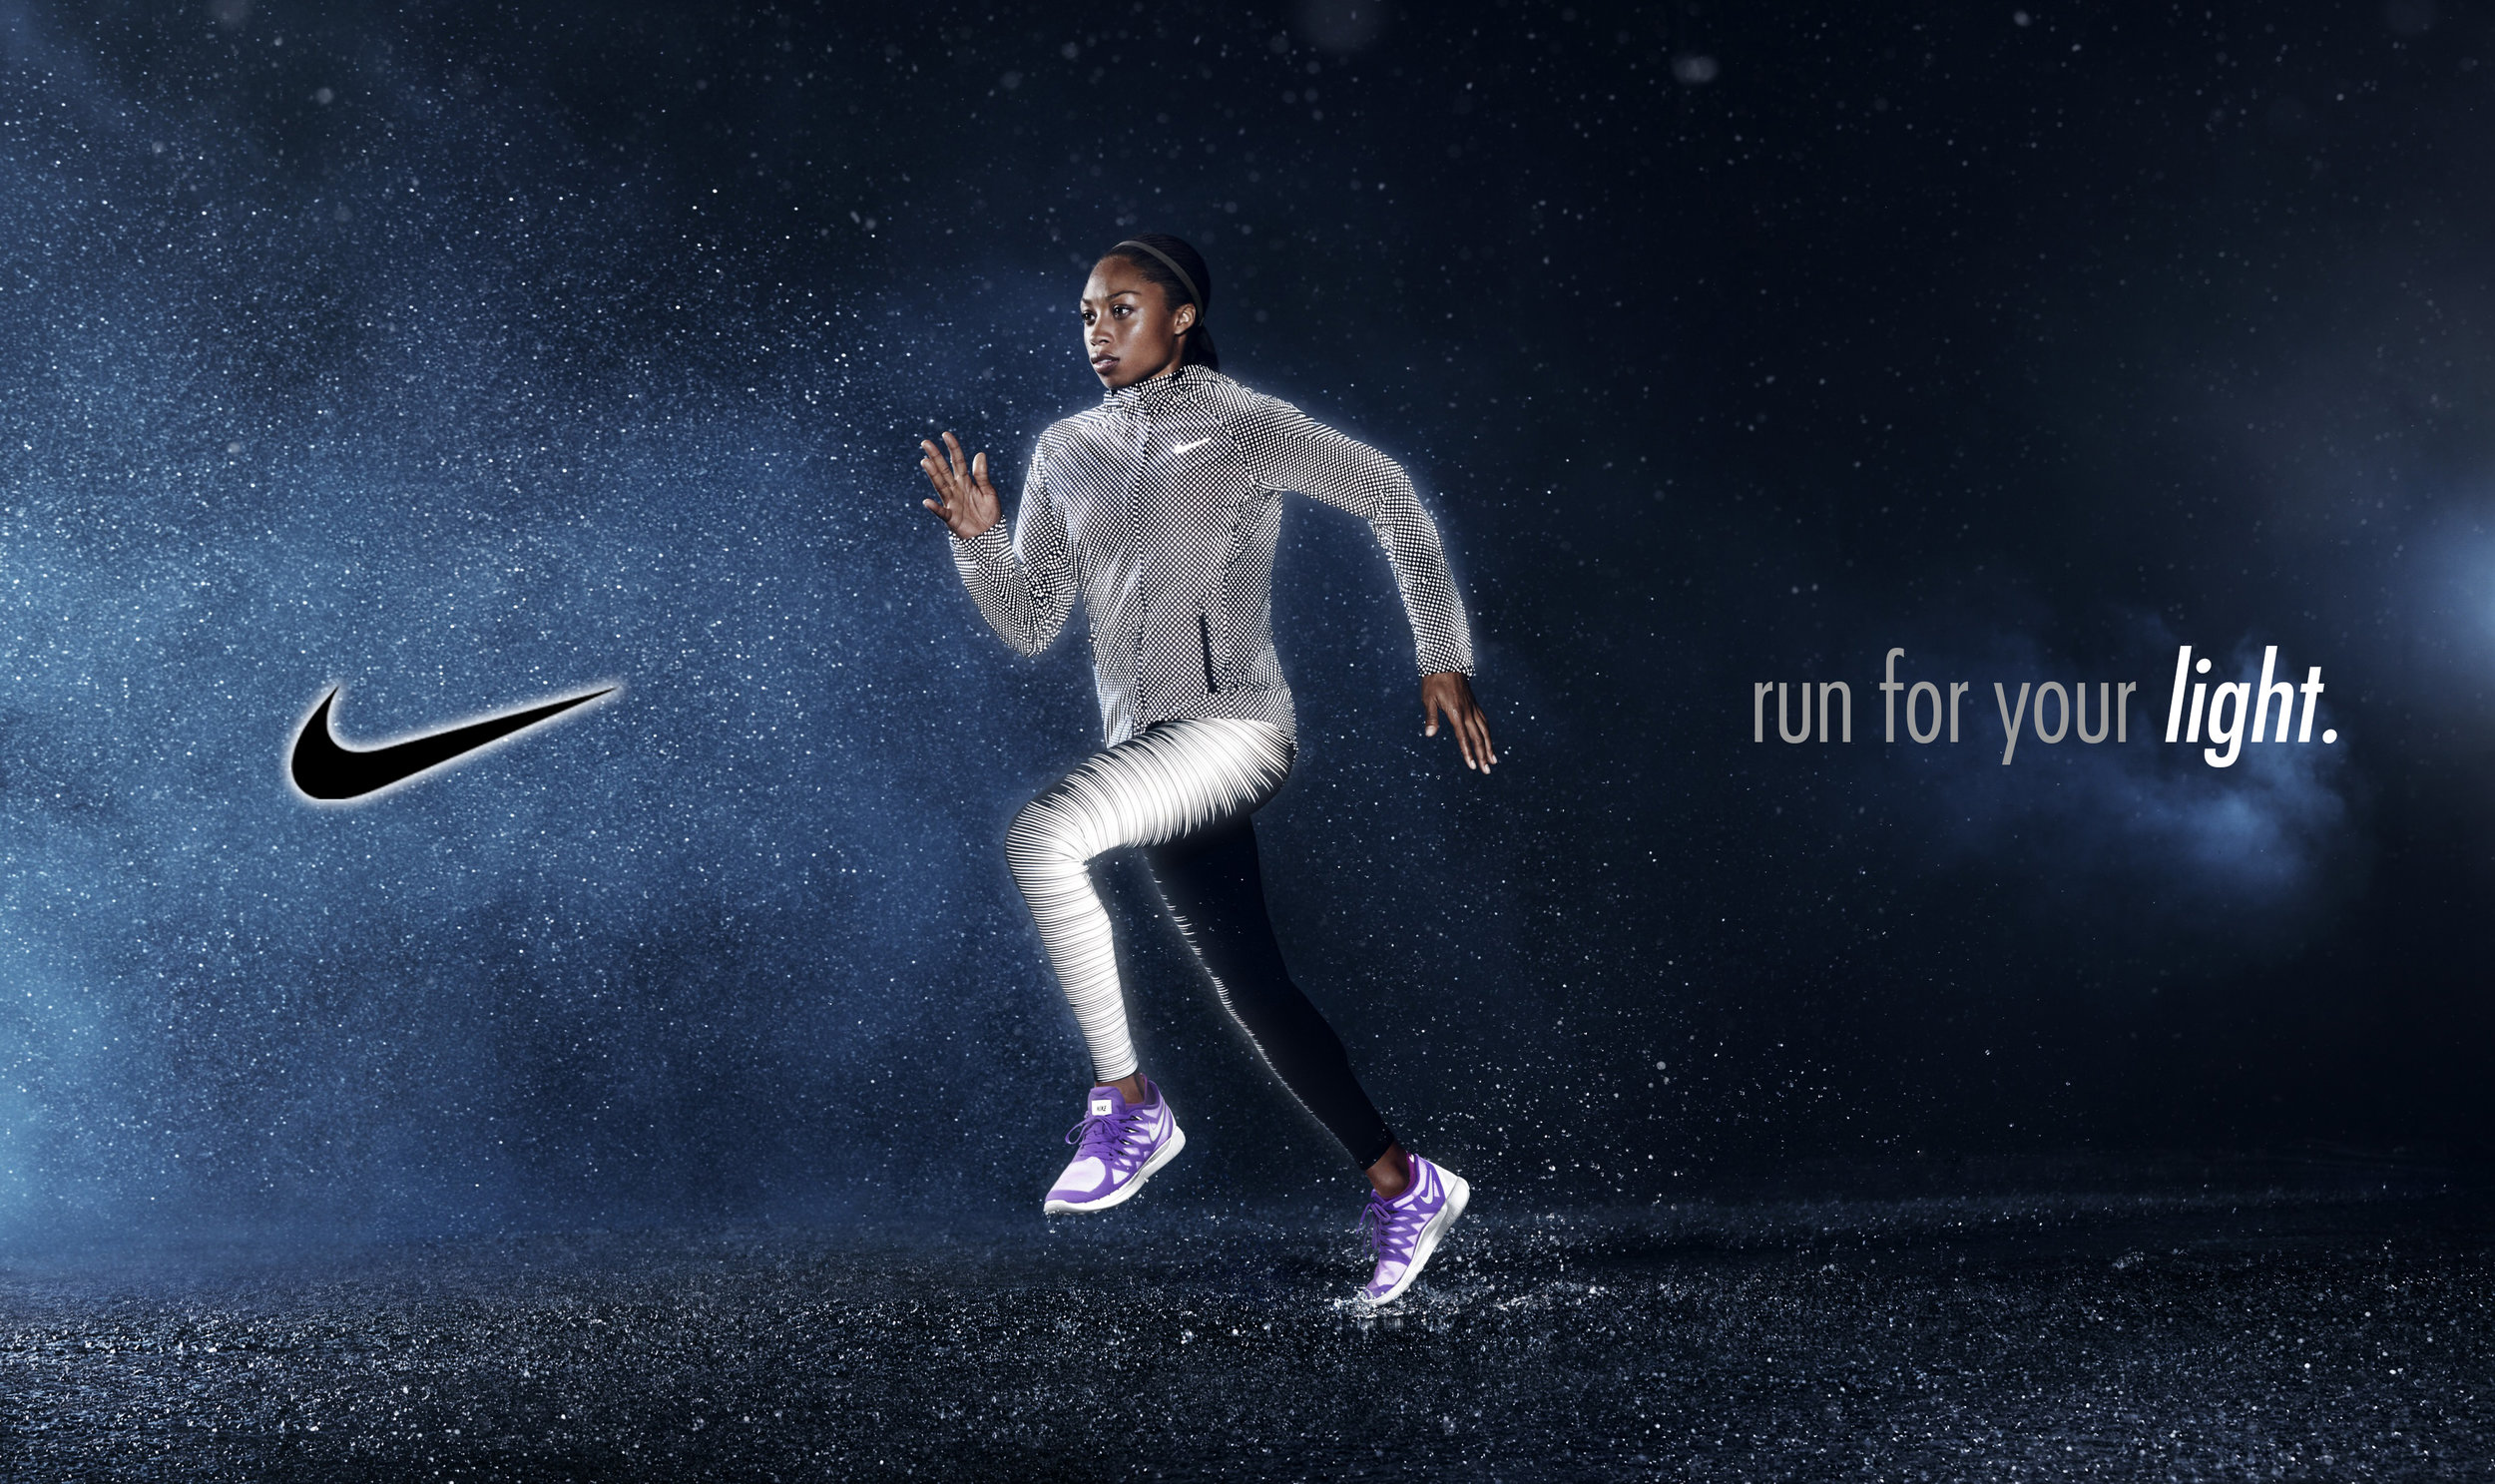 mel blanchard gong ad  nike_campaign_athlete running_dust.jpg